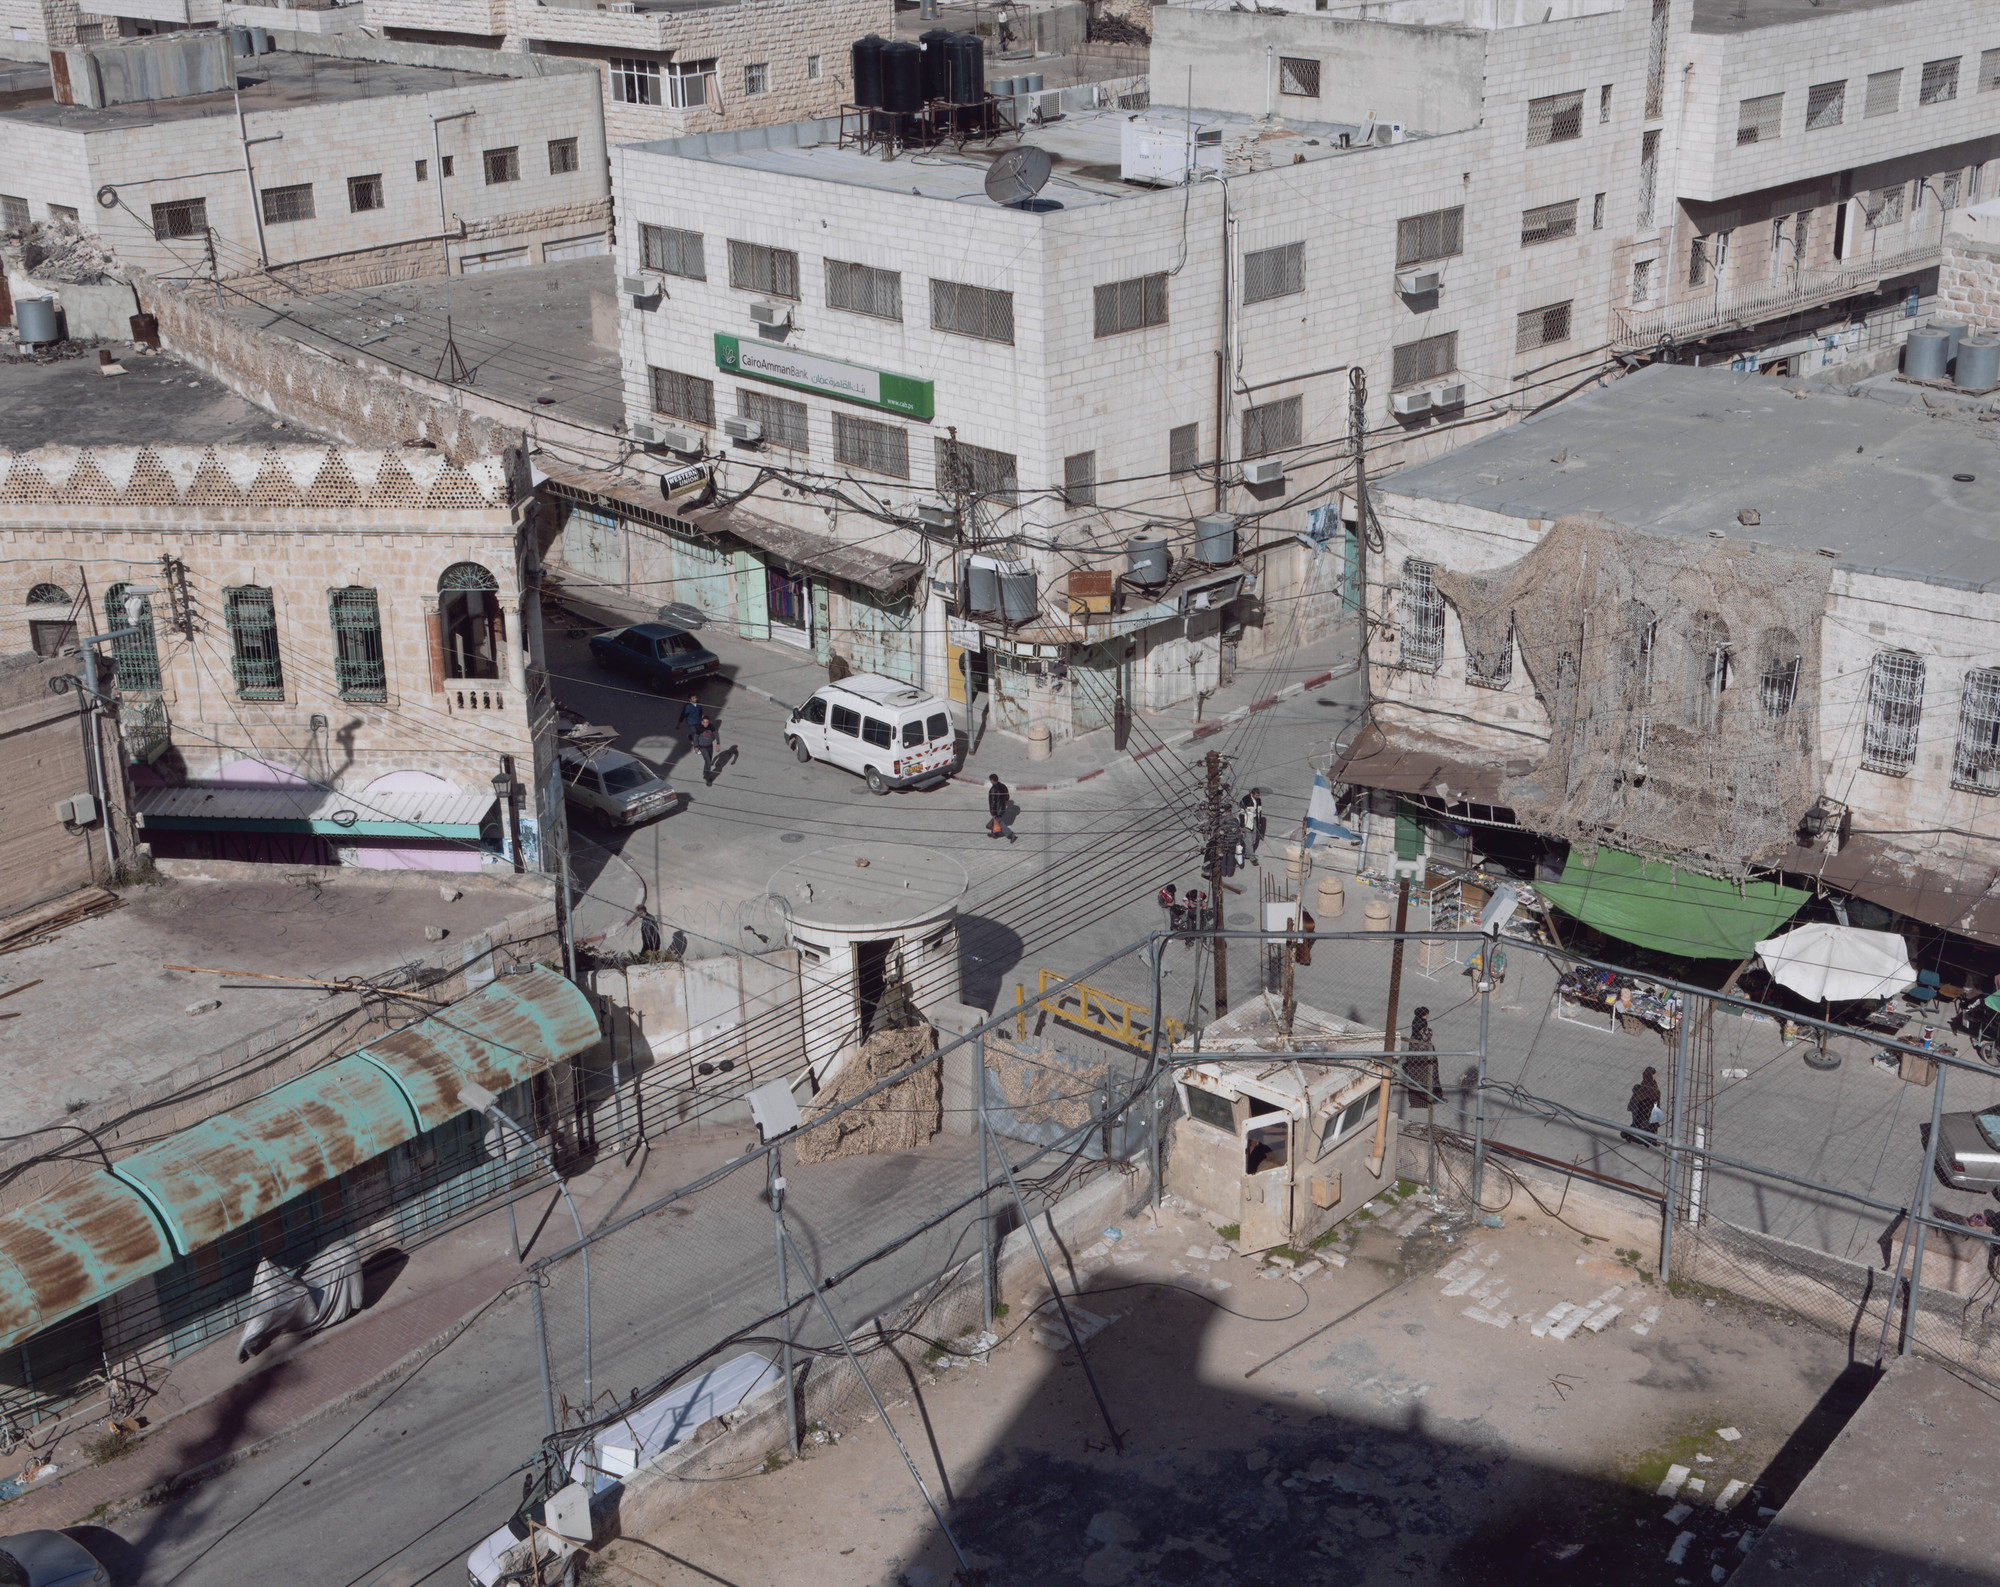 Stephen Shore. Hebron, West Bank, January 11, 2010. 2010